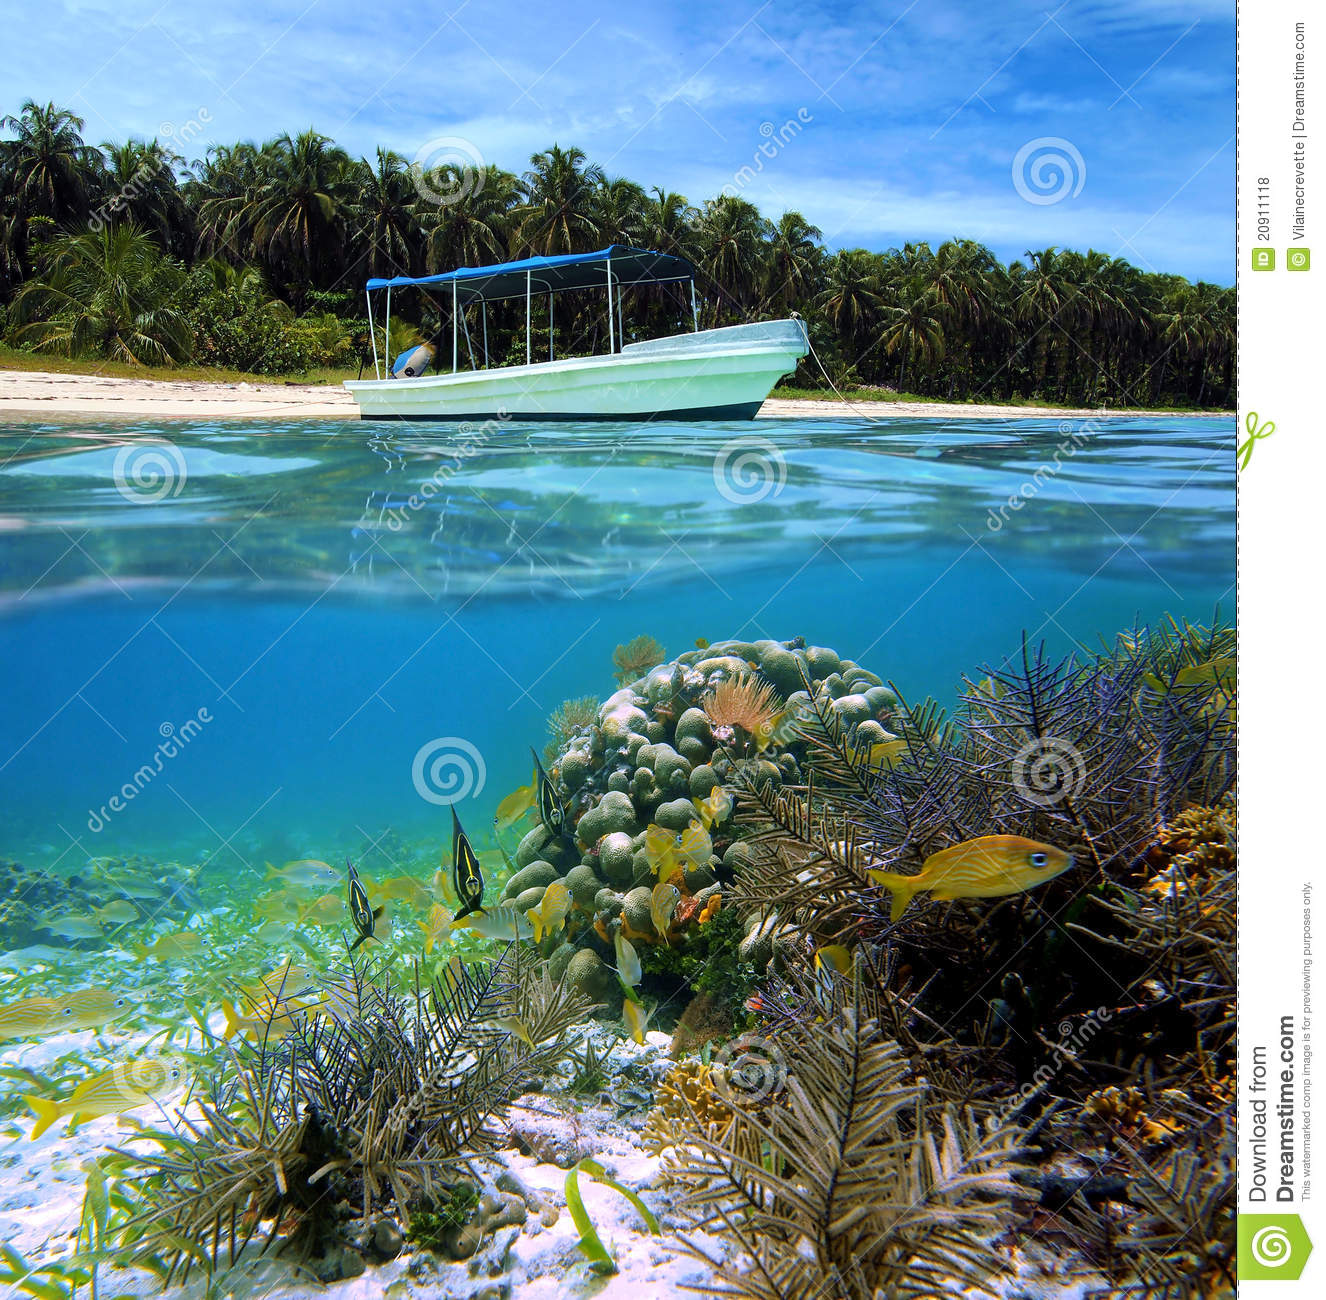 Exotic Beach: Tropical Beach And Fish Stock Photo. Image Of America